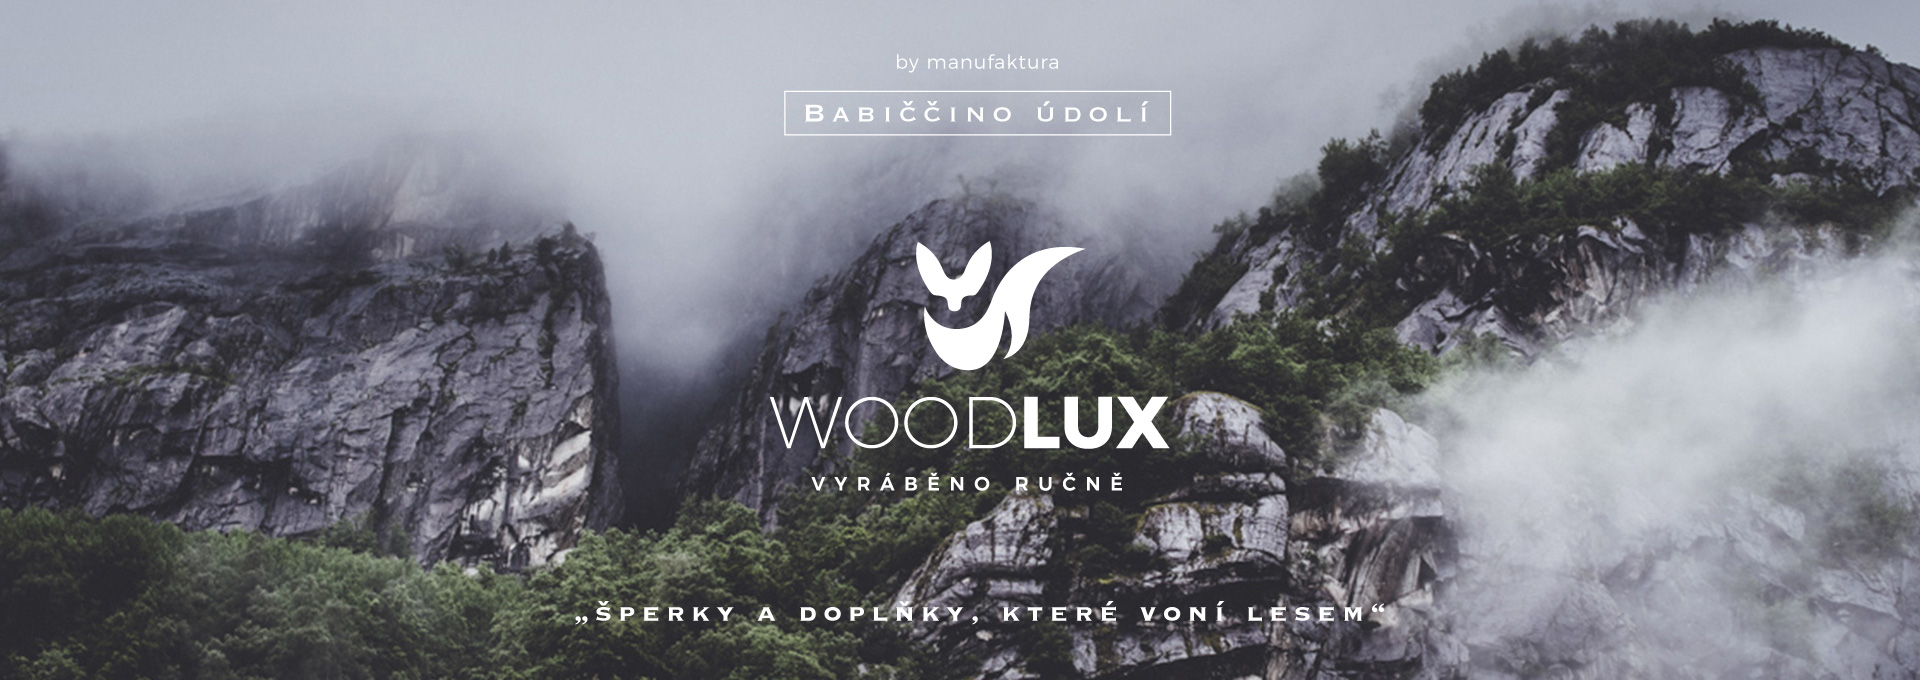 woodlux_banner_01_HD